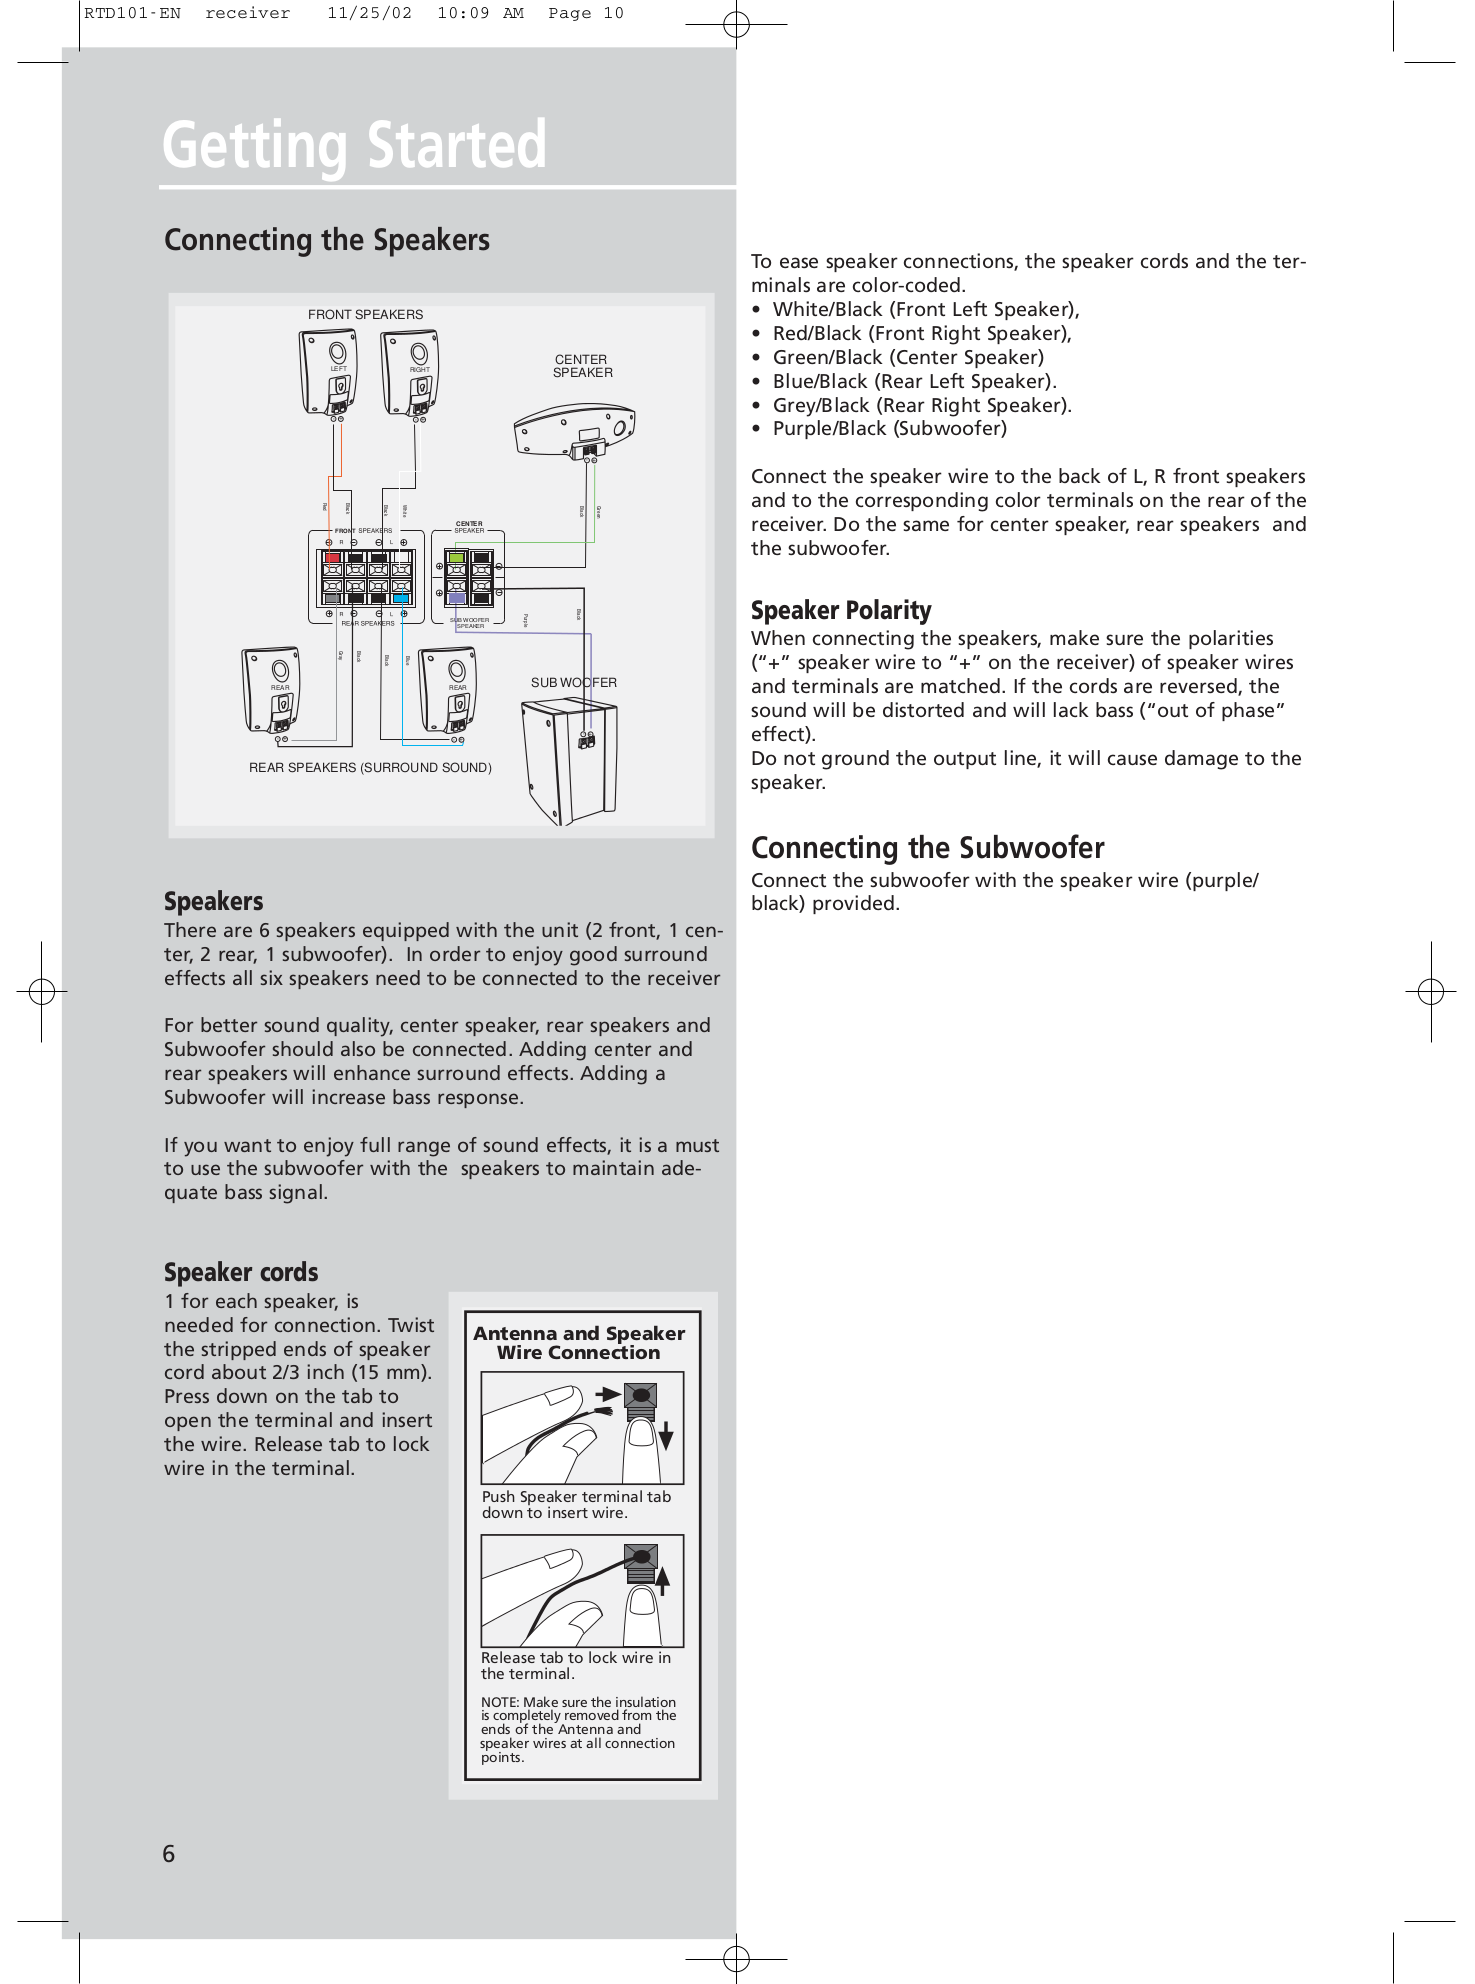 Page 2 Of Rca Home unit of conductivity microsiemens diagram